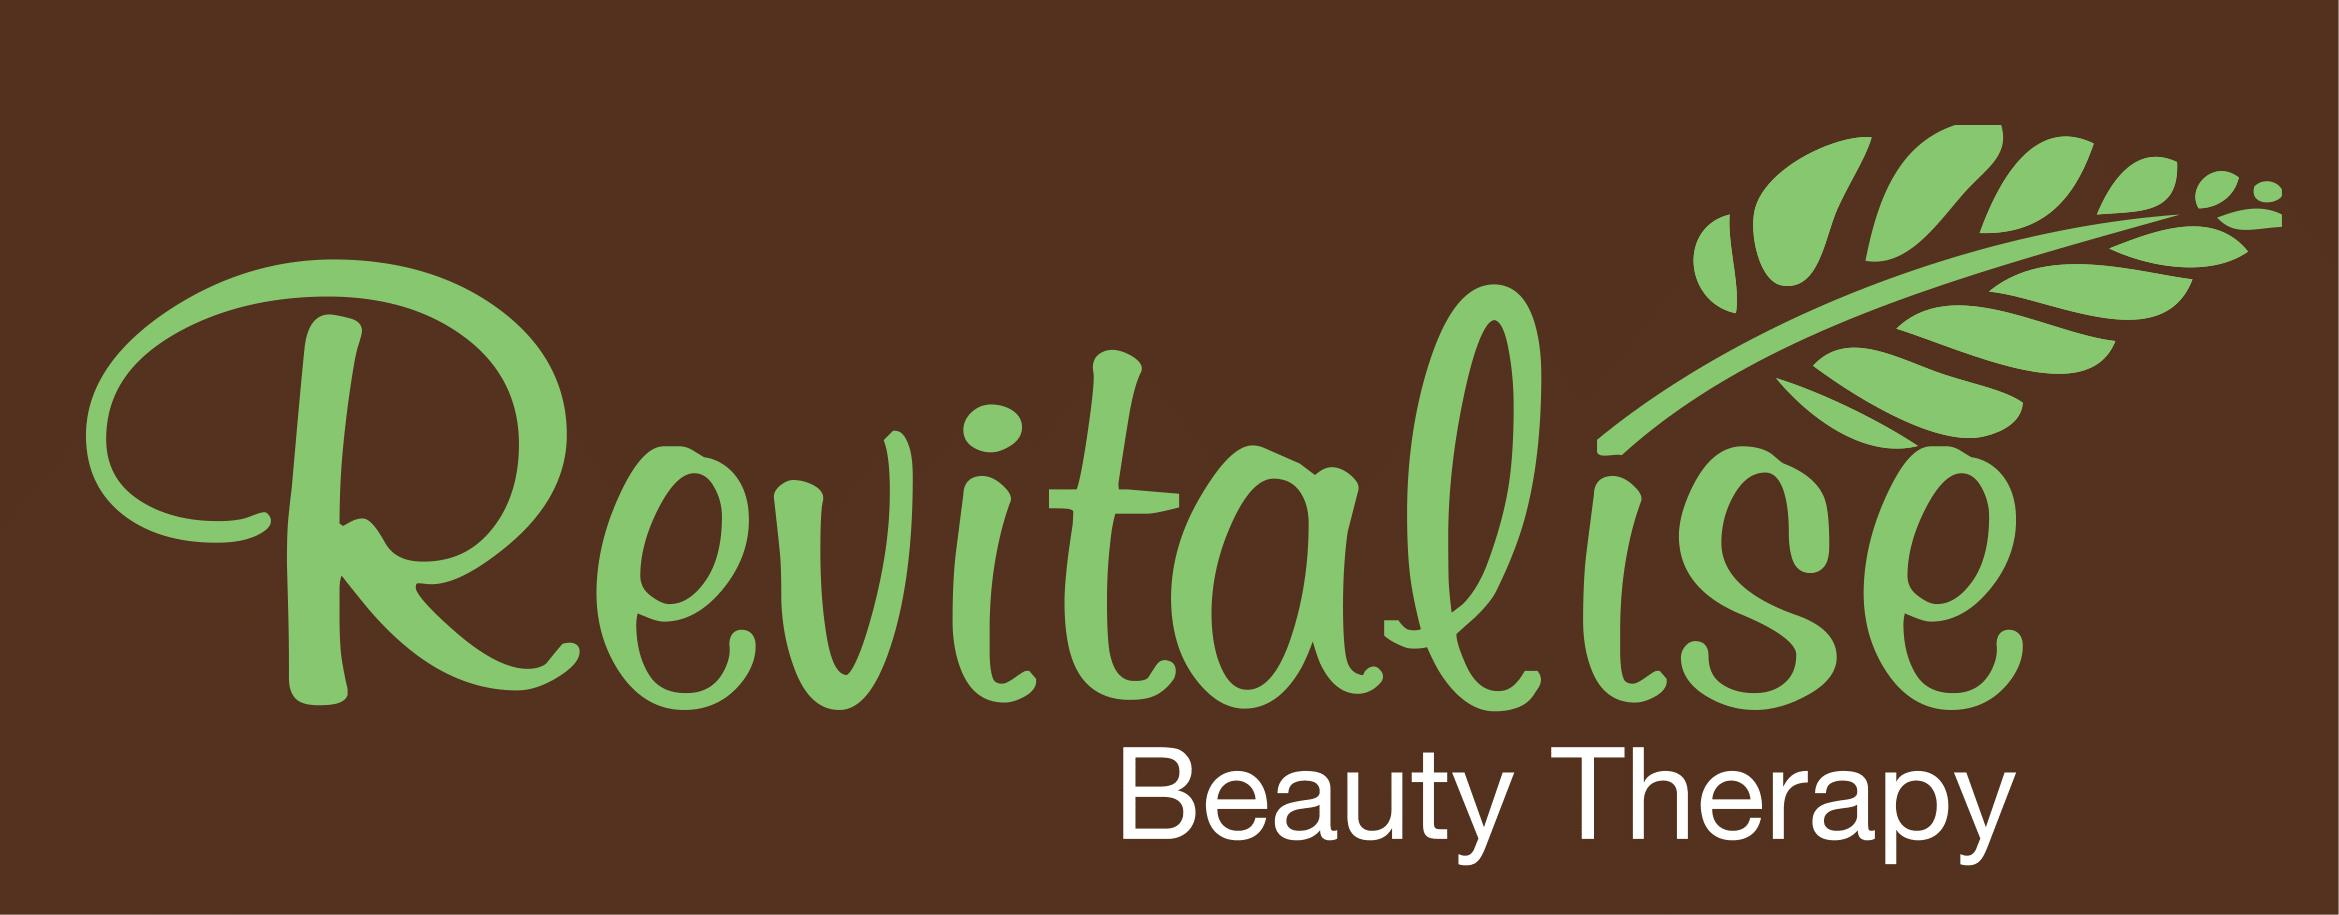 Revitalise Beauty Therapy